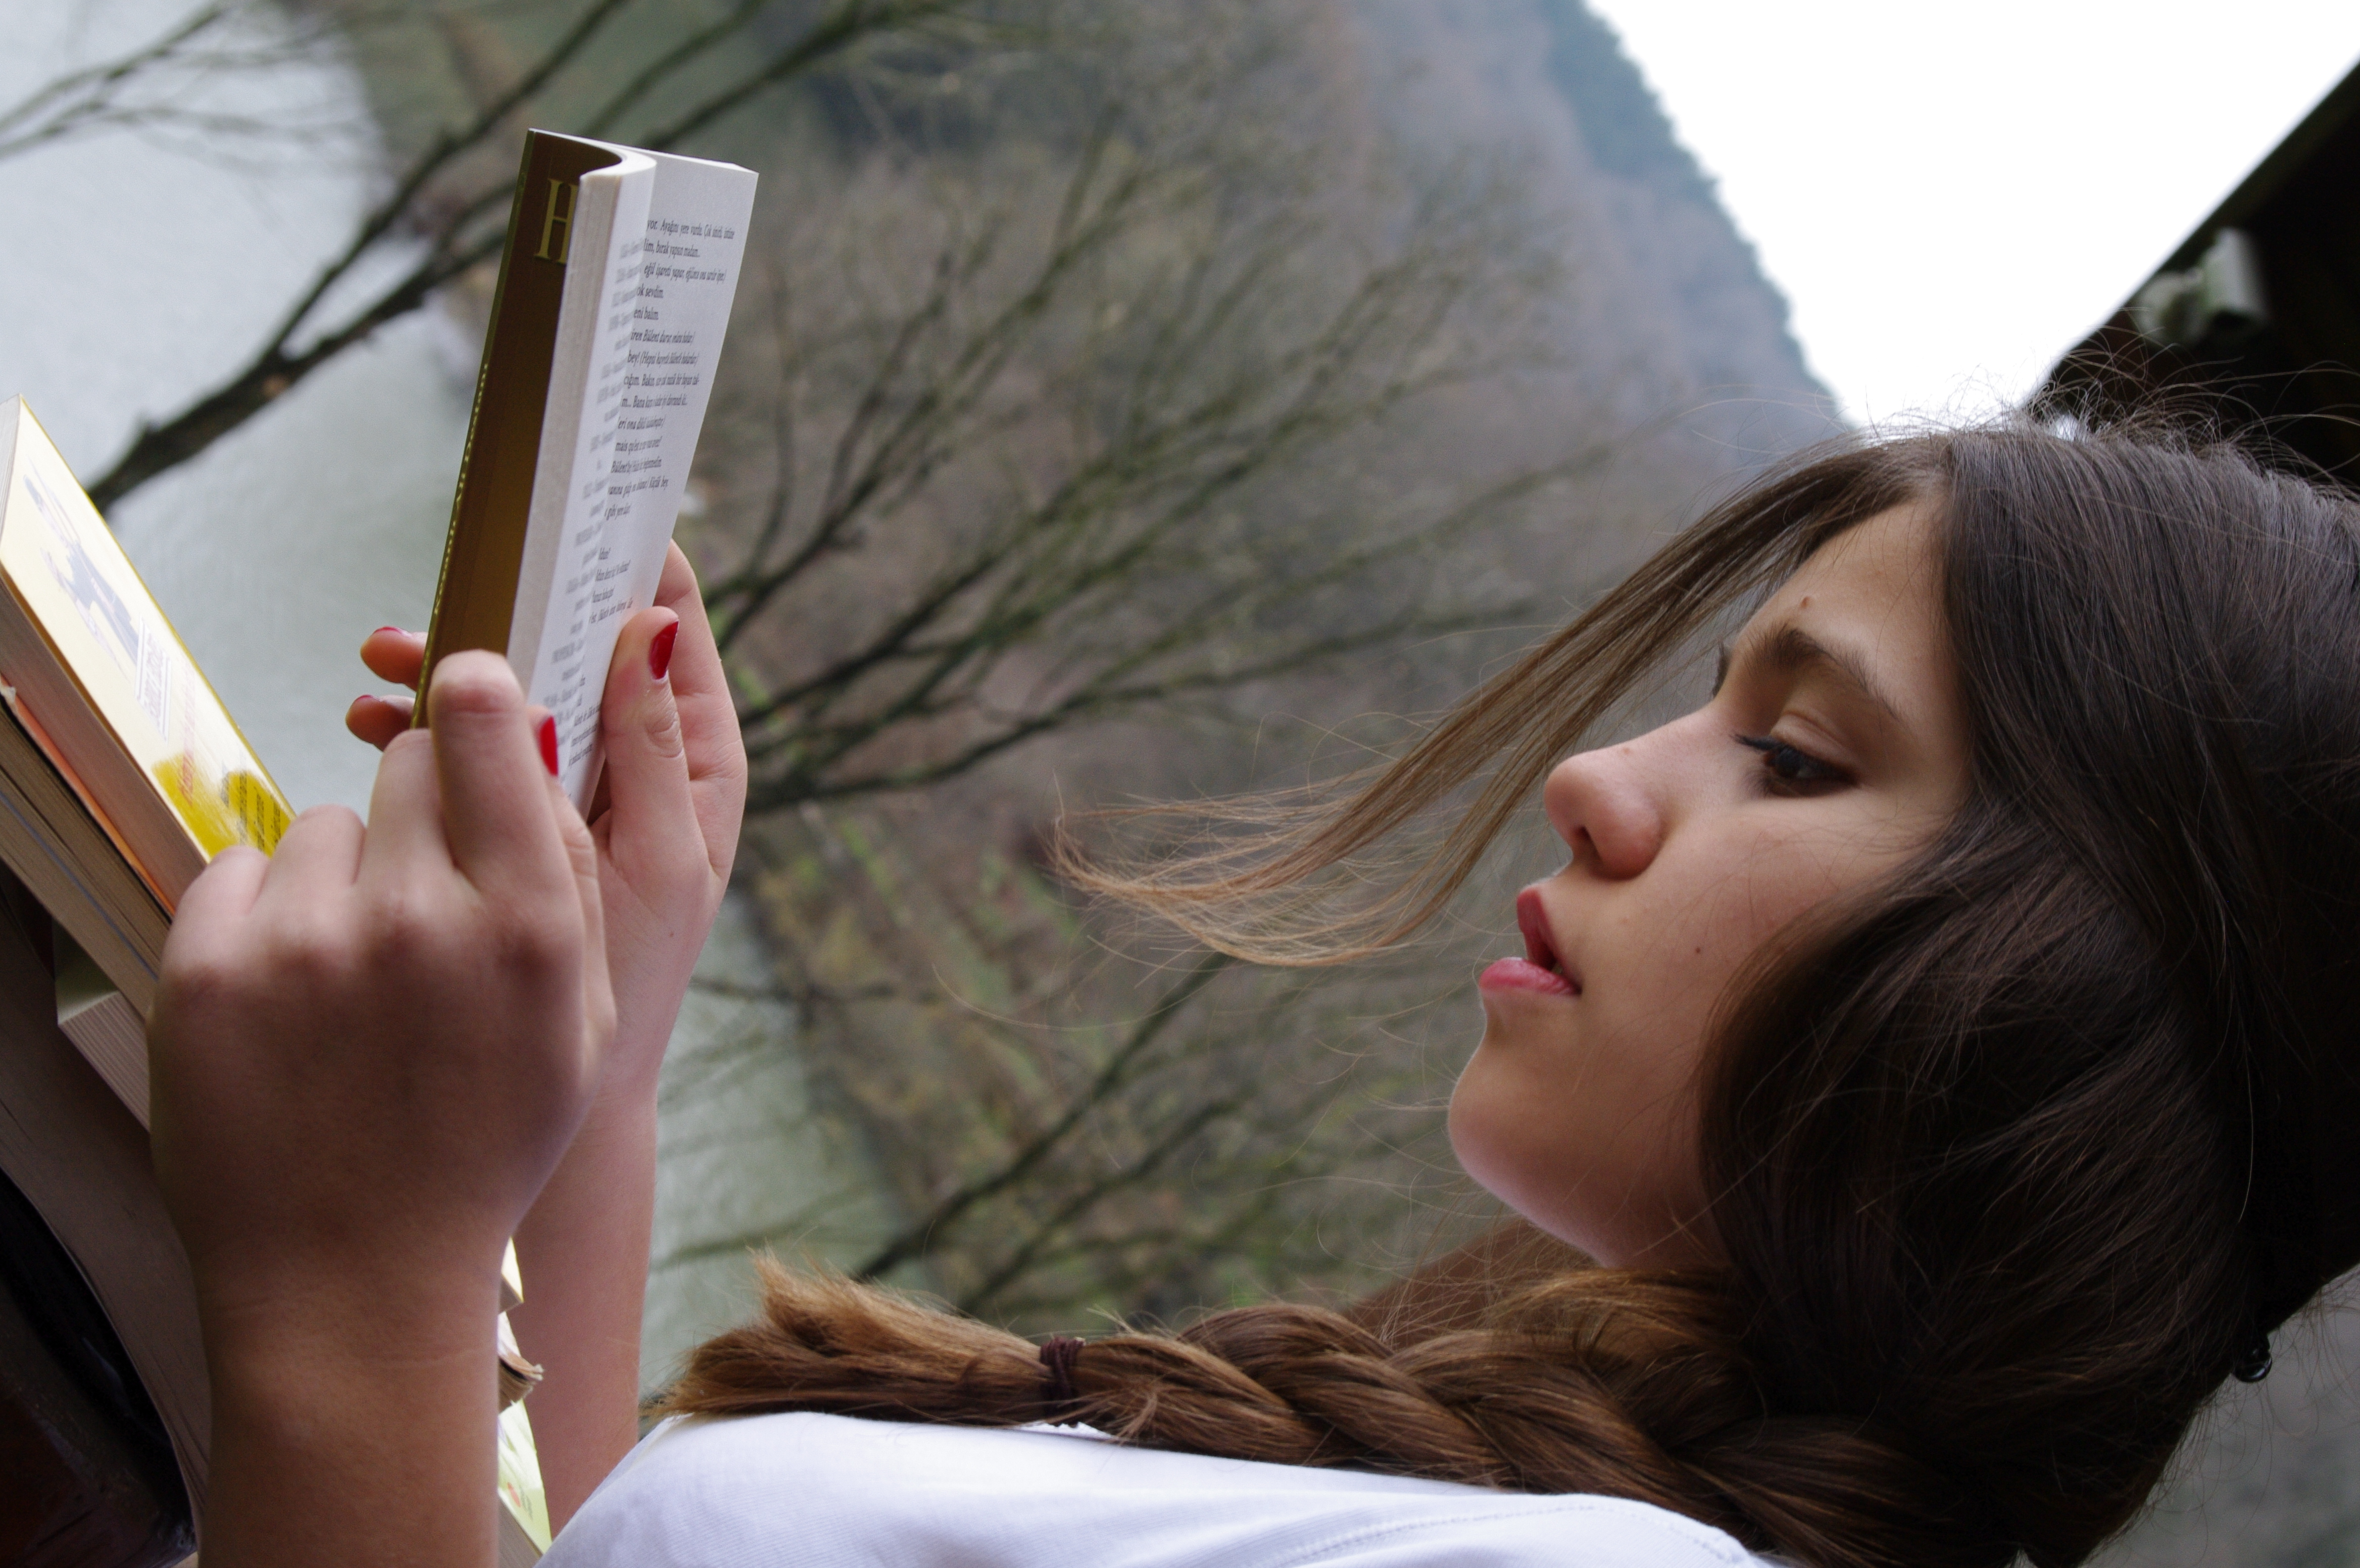 brunettes woman reading Books HD Wallpaper